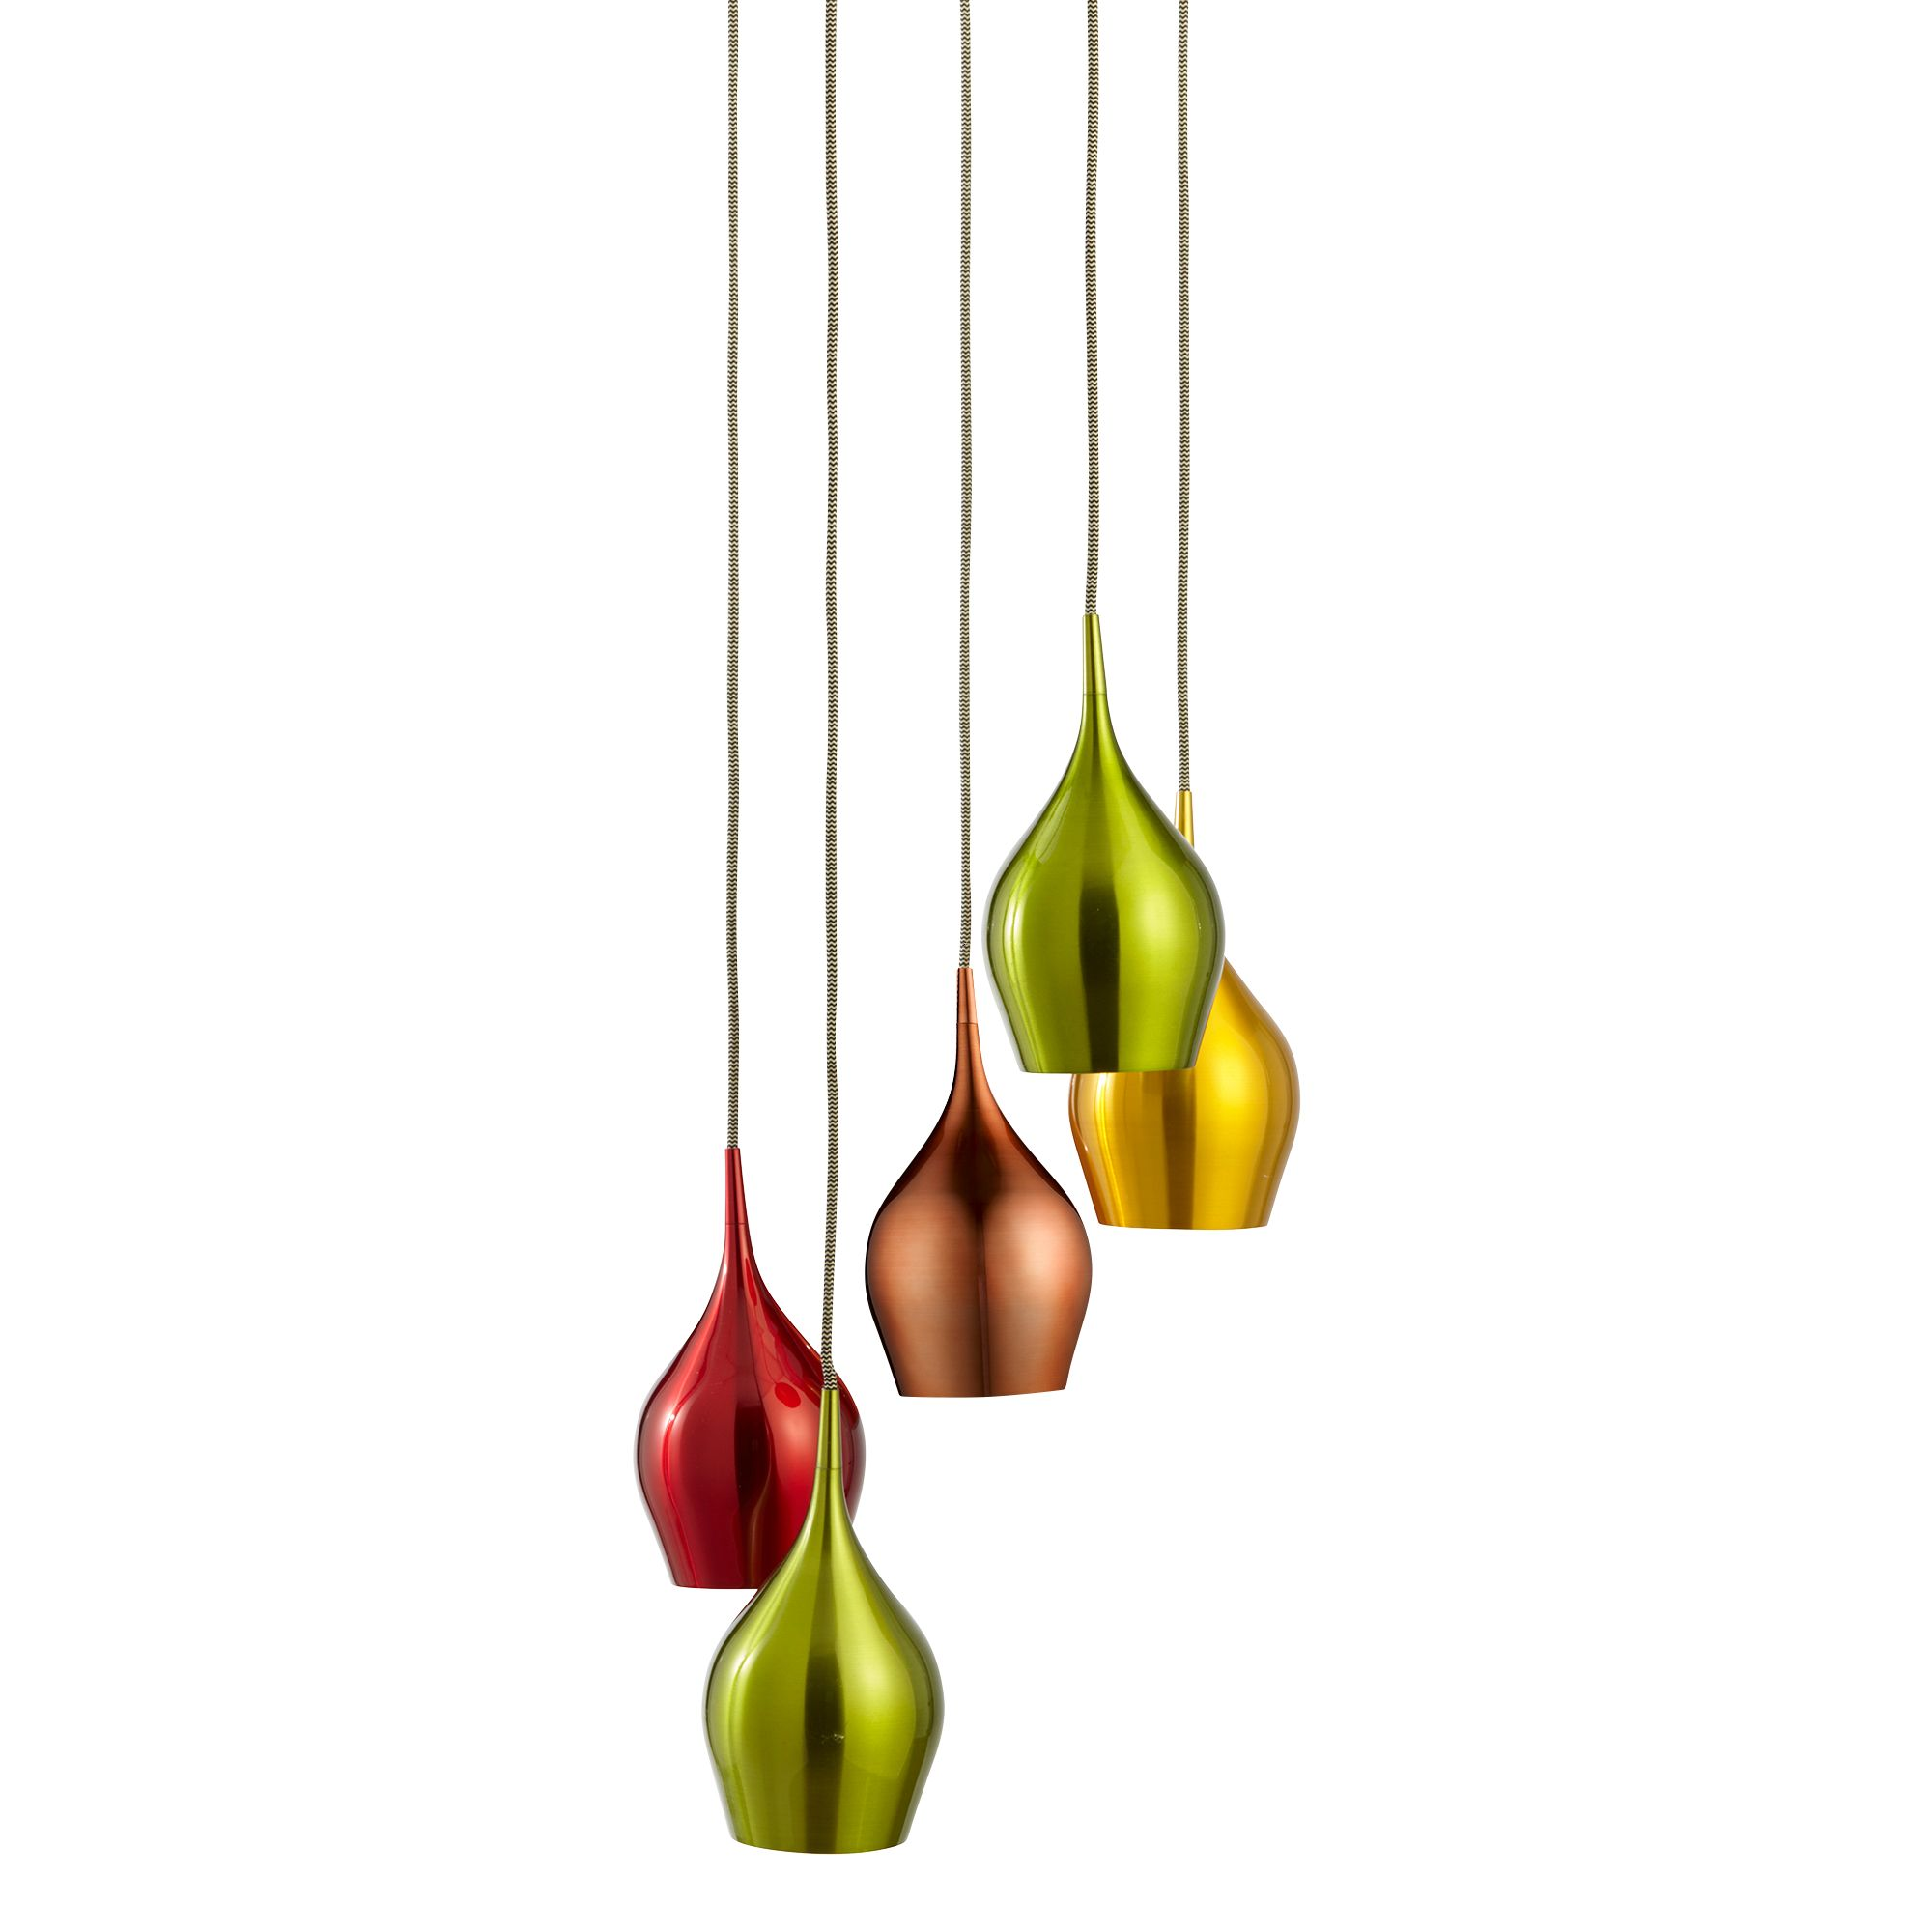 S5 VIBRANT ANODISED ALUMINIUM, 5 LIGHT MULTI-DROP PENDANT MULTI-COLOURED